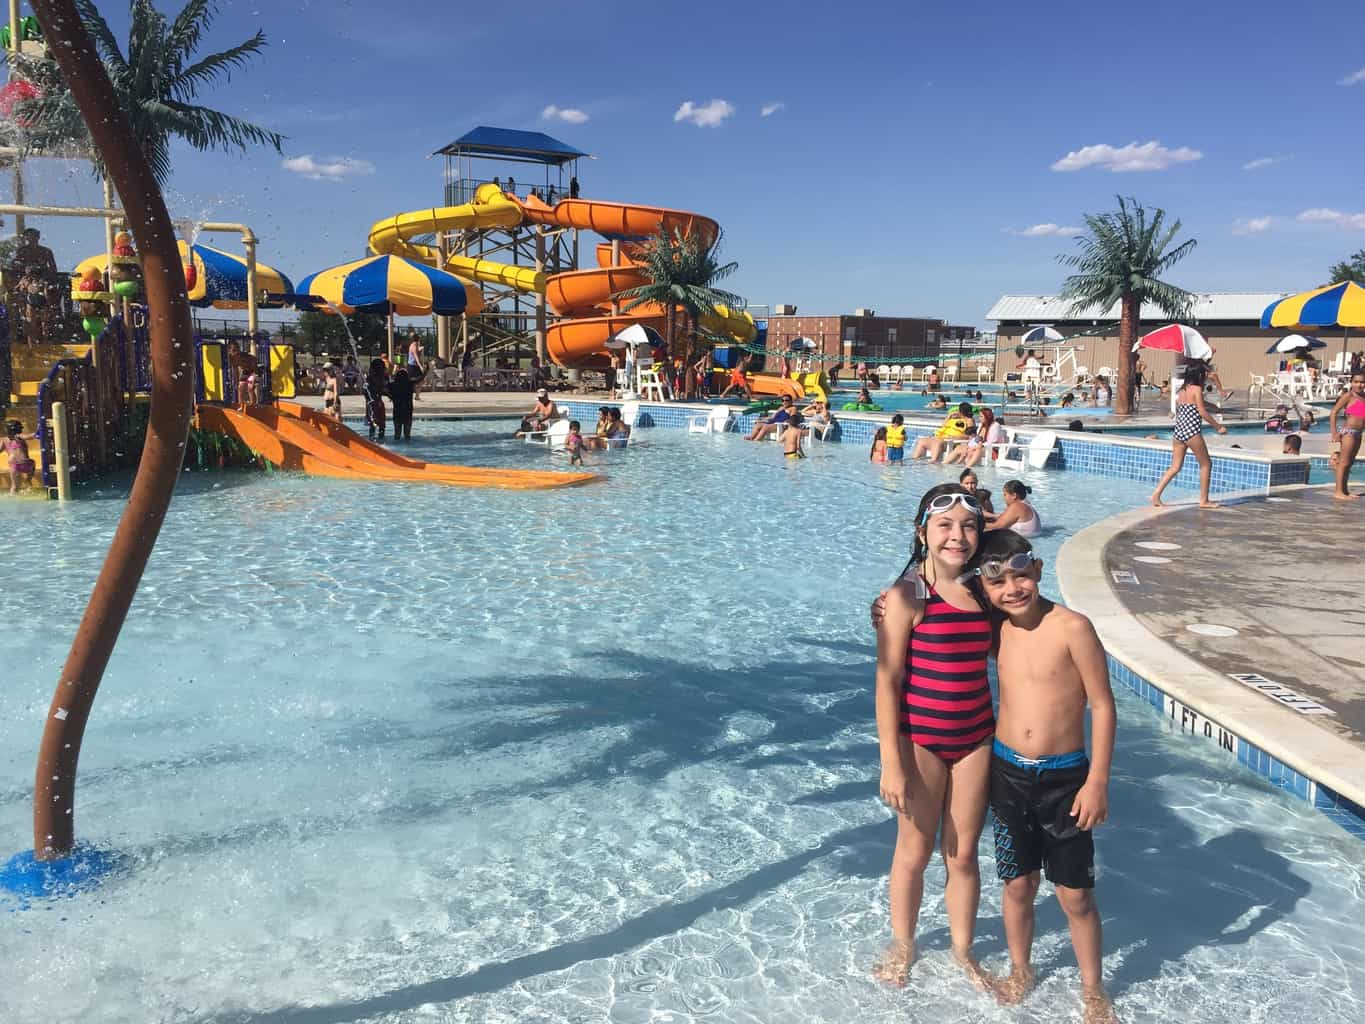 15 Things to do in Midland, Texas - Mommy Travels